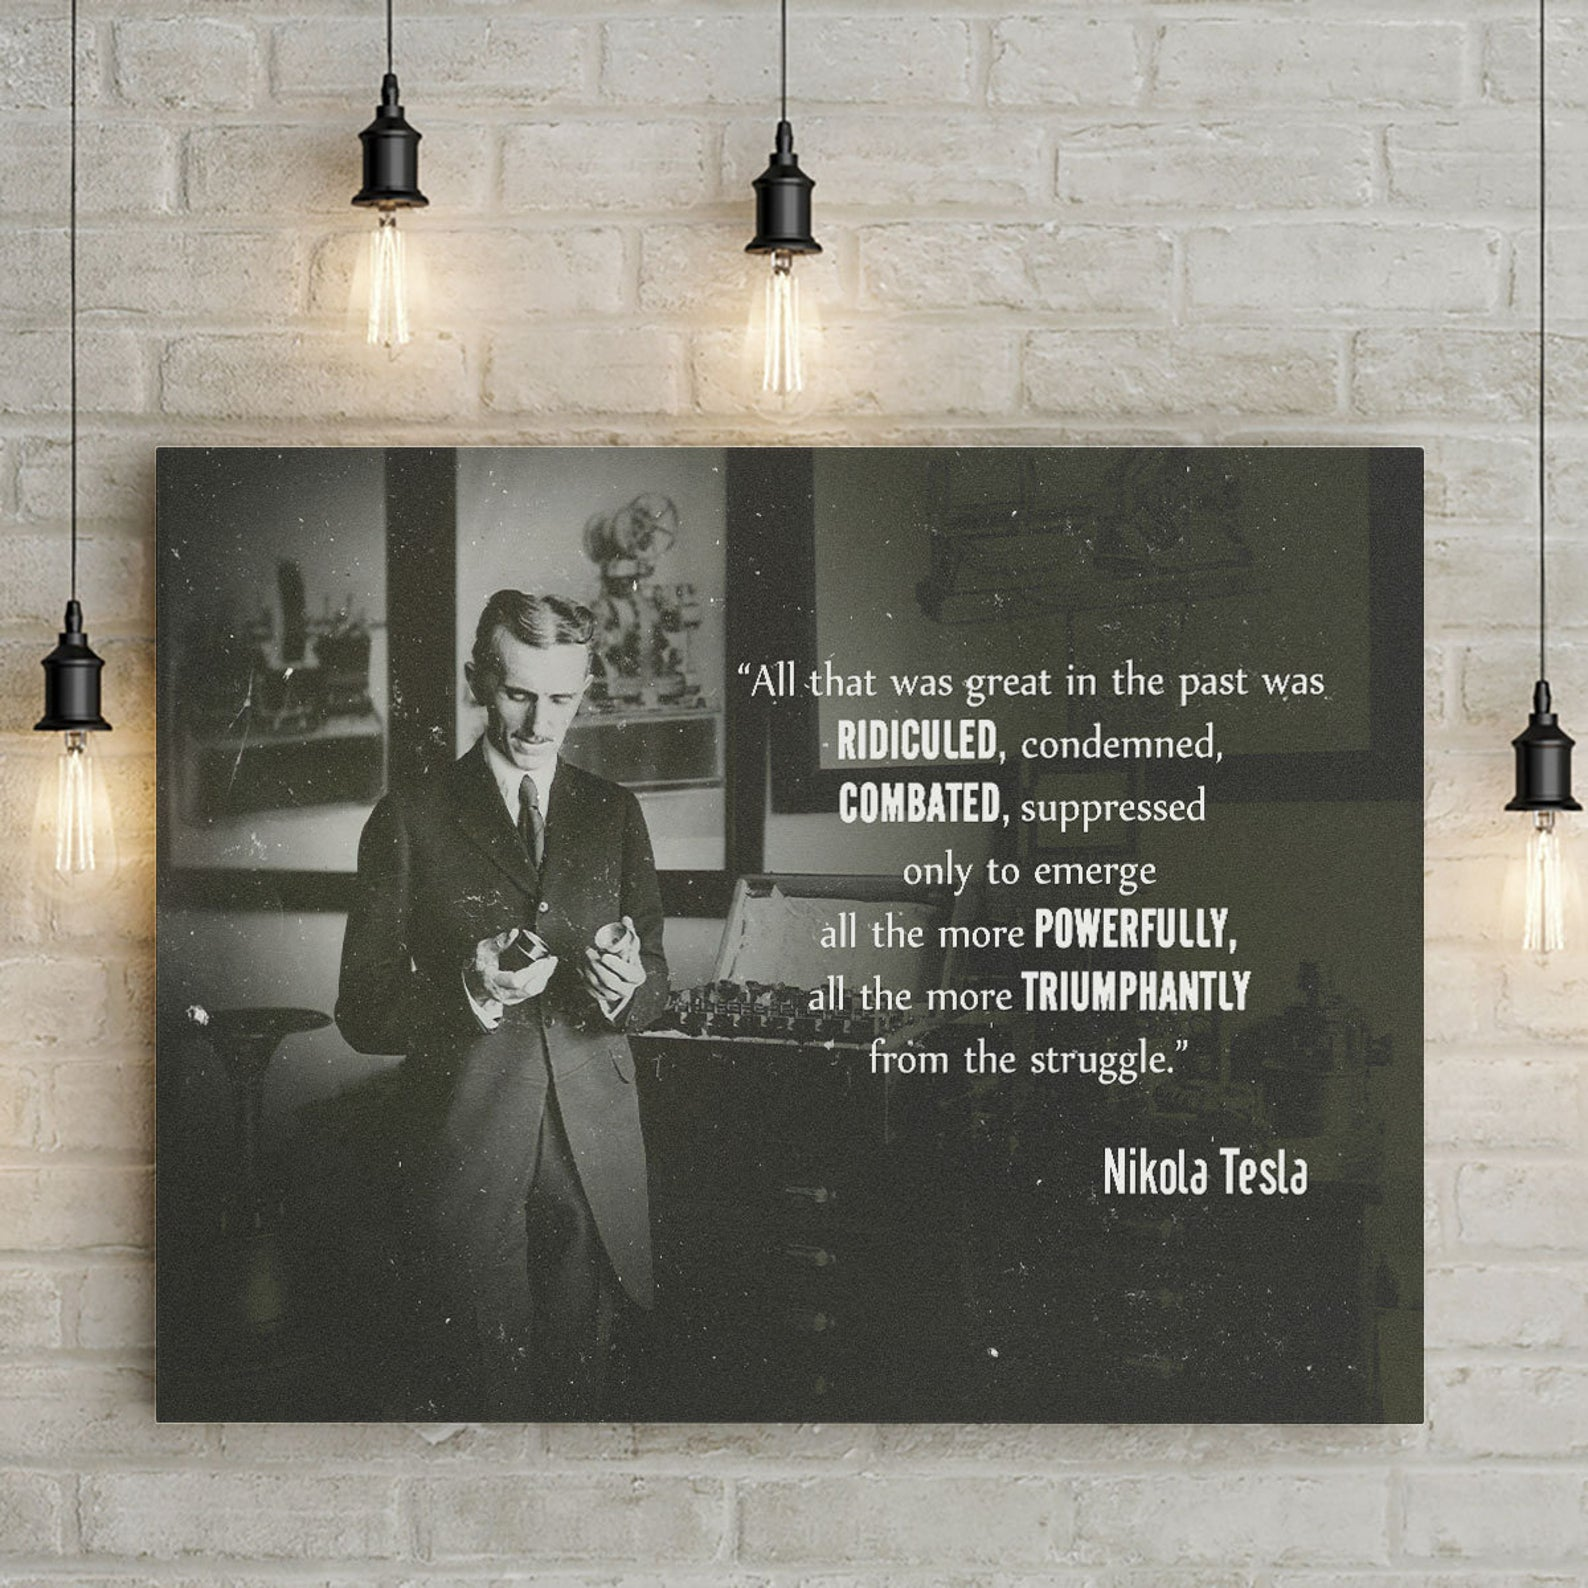 Nikola Tesla Books, Movies, Gifts and Decor (and a Brief History)